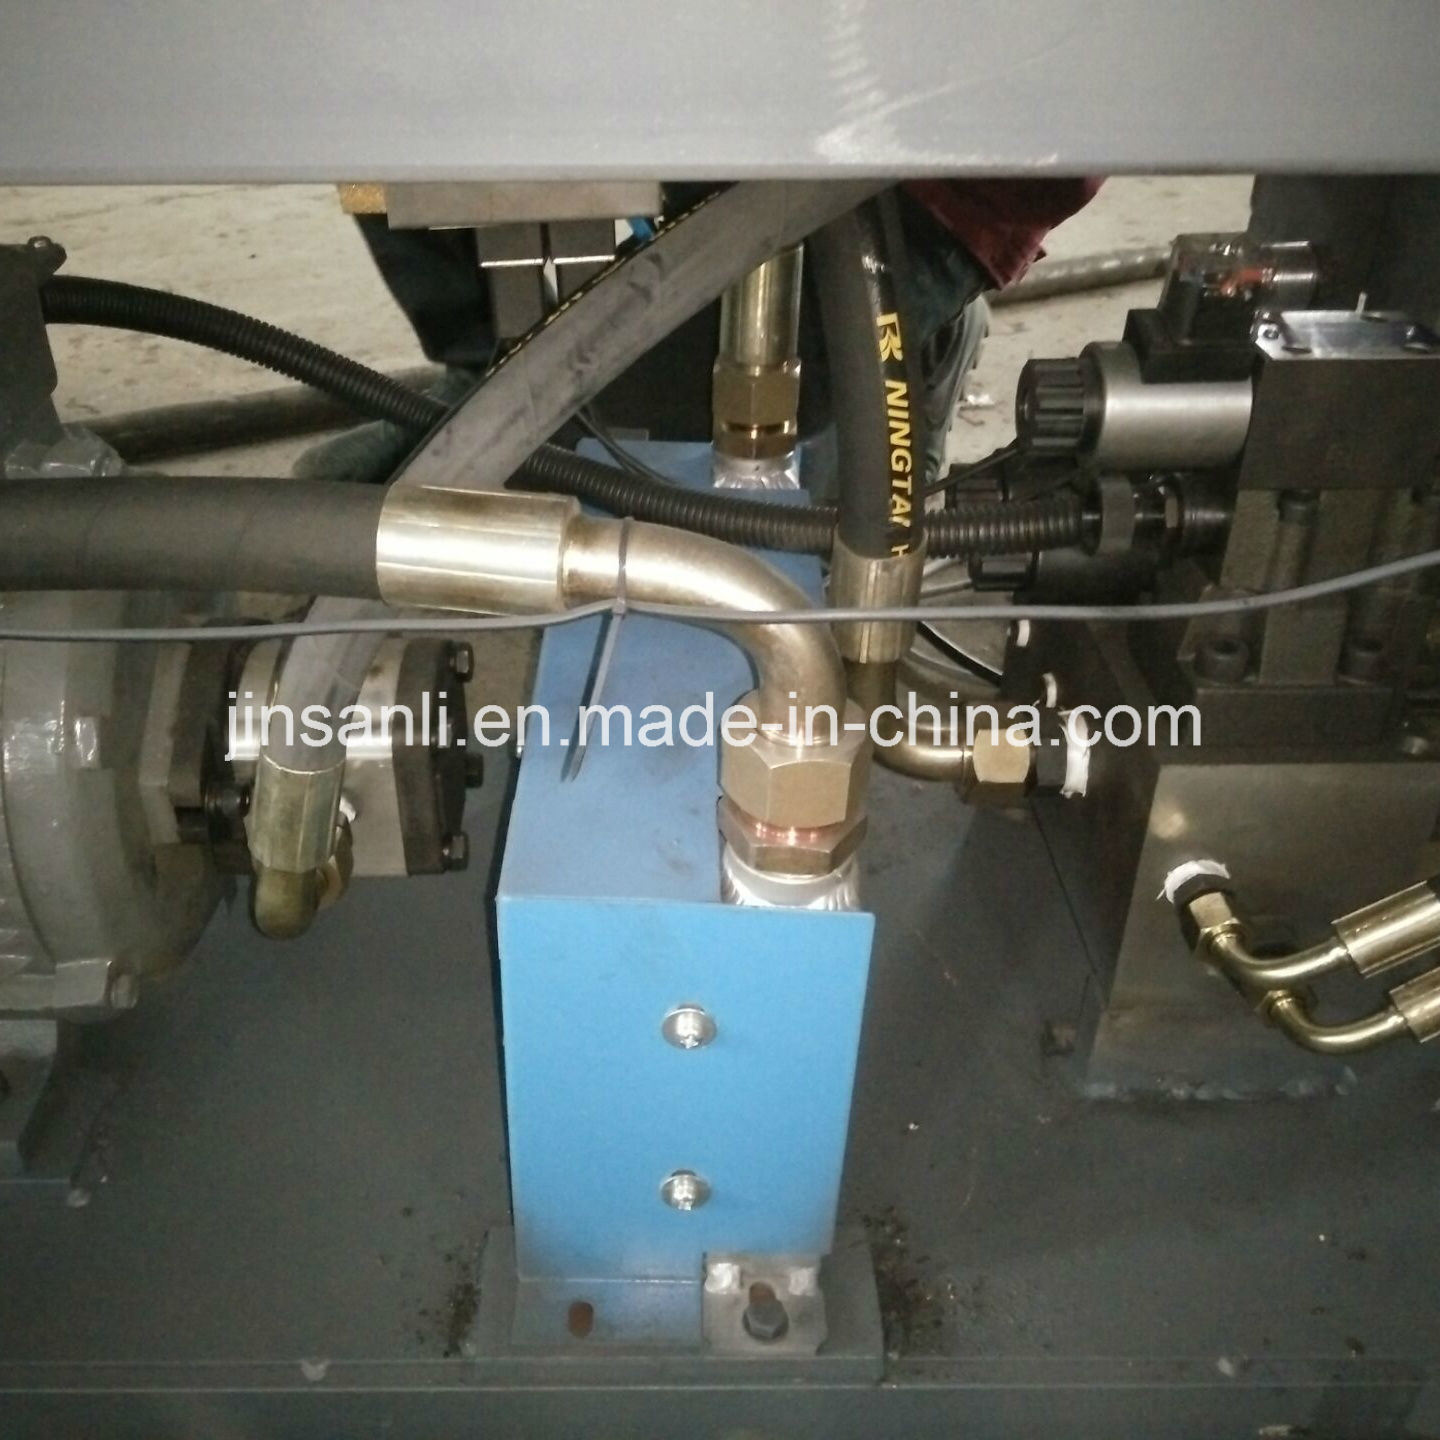 Railway Tunnel Constructions Use Round Pipe Punching Holes Machine with Best Quality